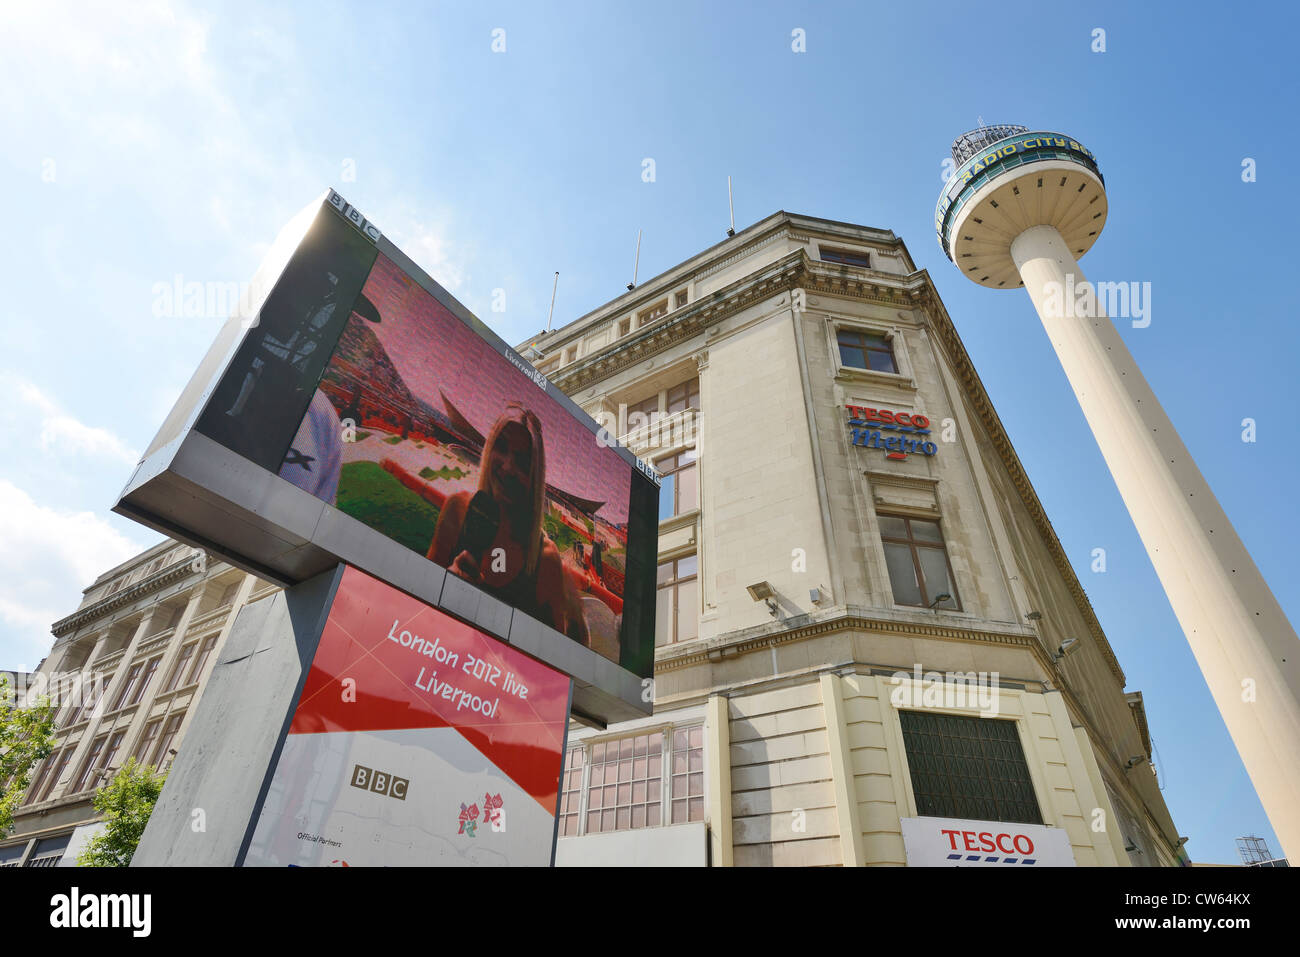 The BBC Big Screen in Clayton Square Liverpool showing London 2012 Olympics - Stock Image